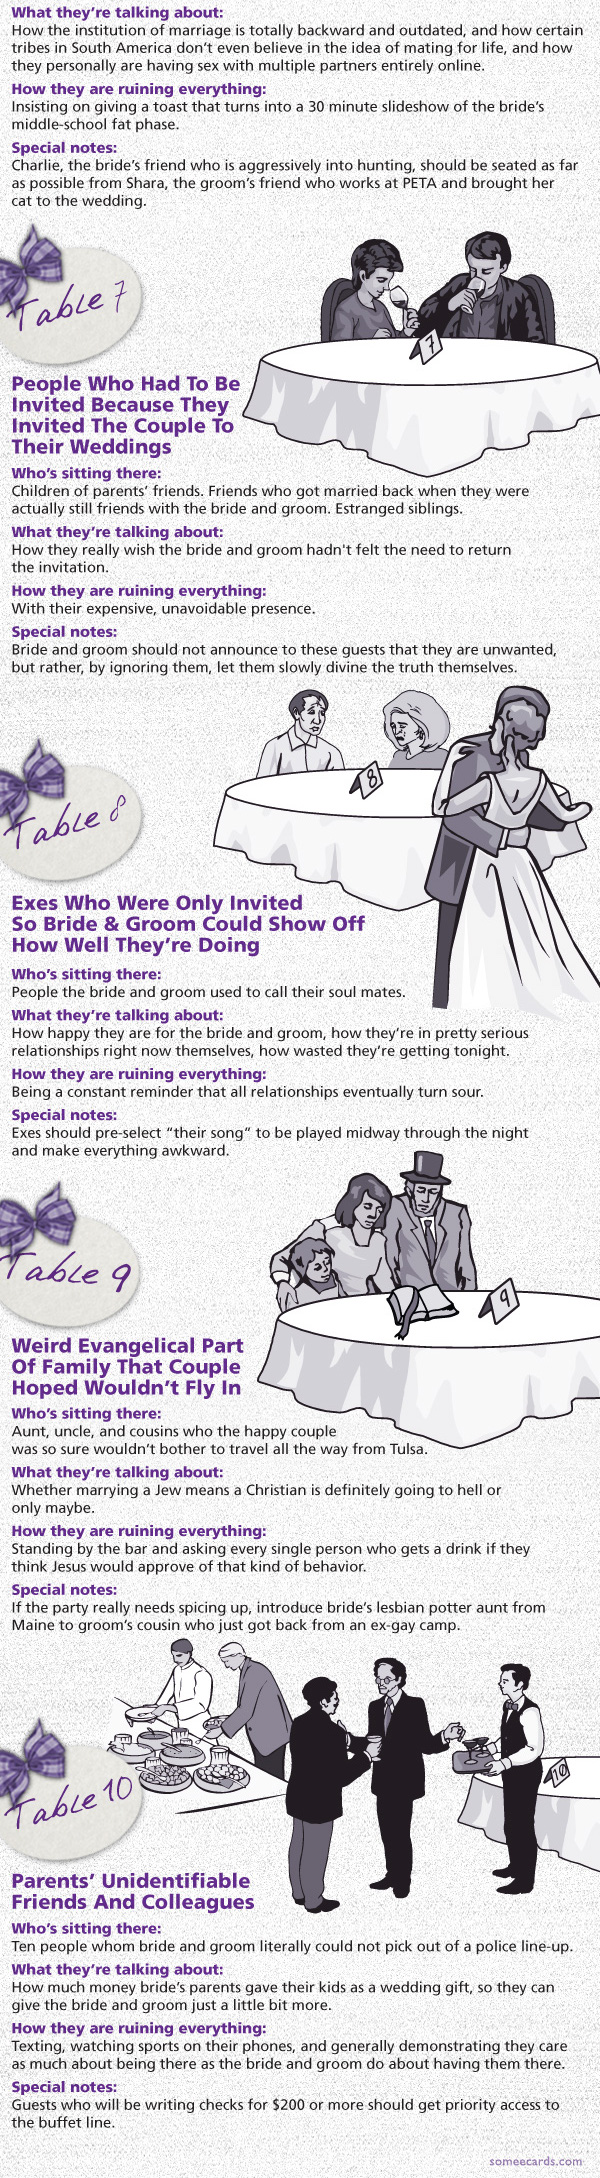 A breakdown of where every ridiculous wedding guest will be seated.